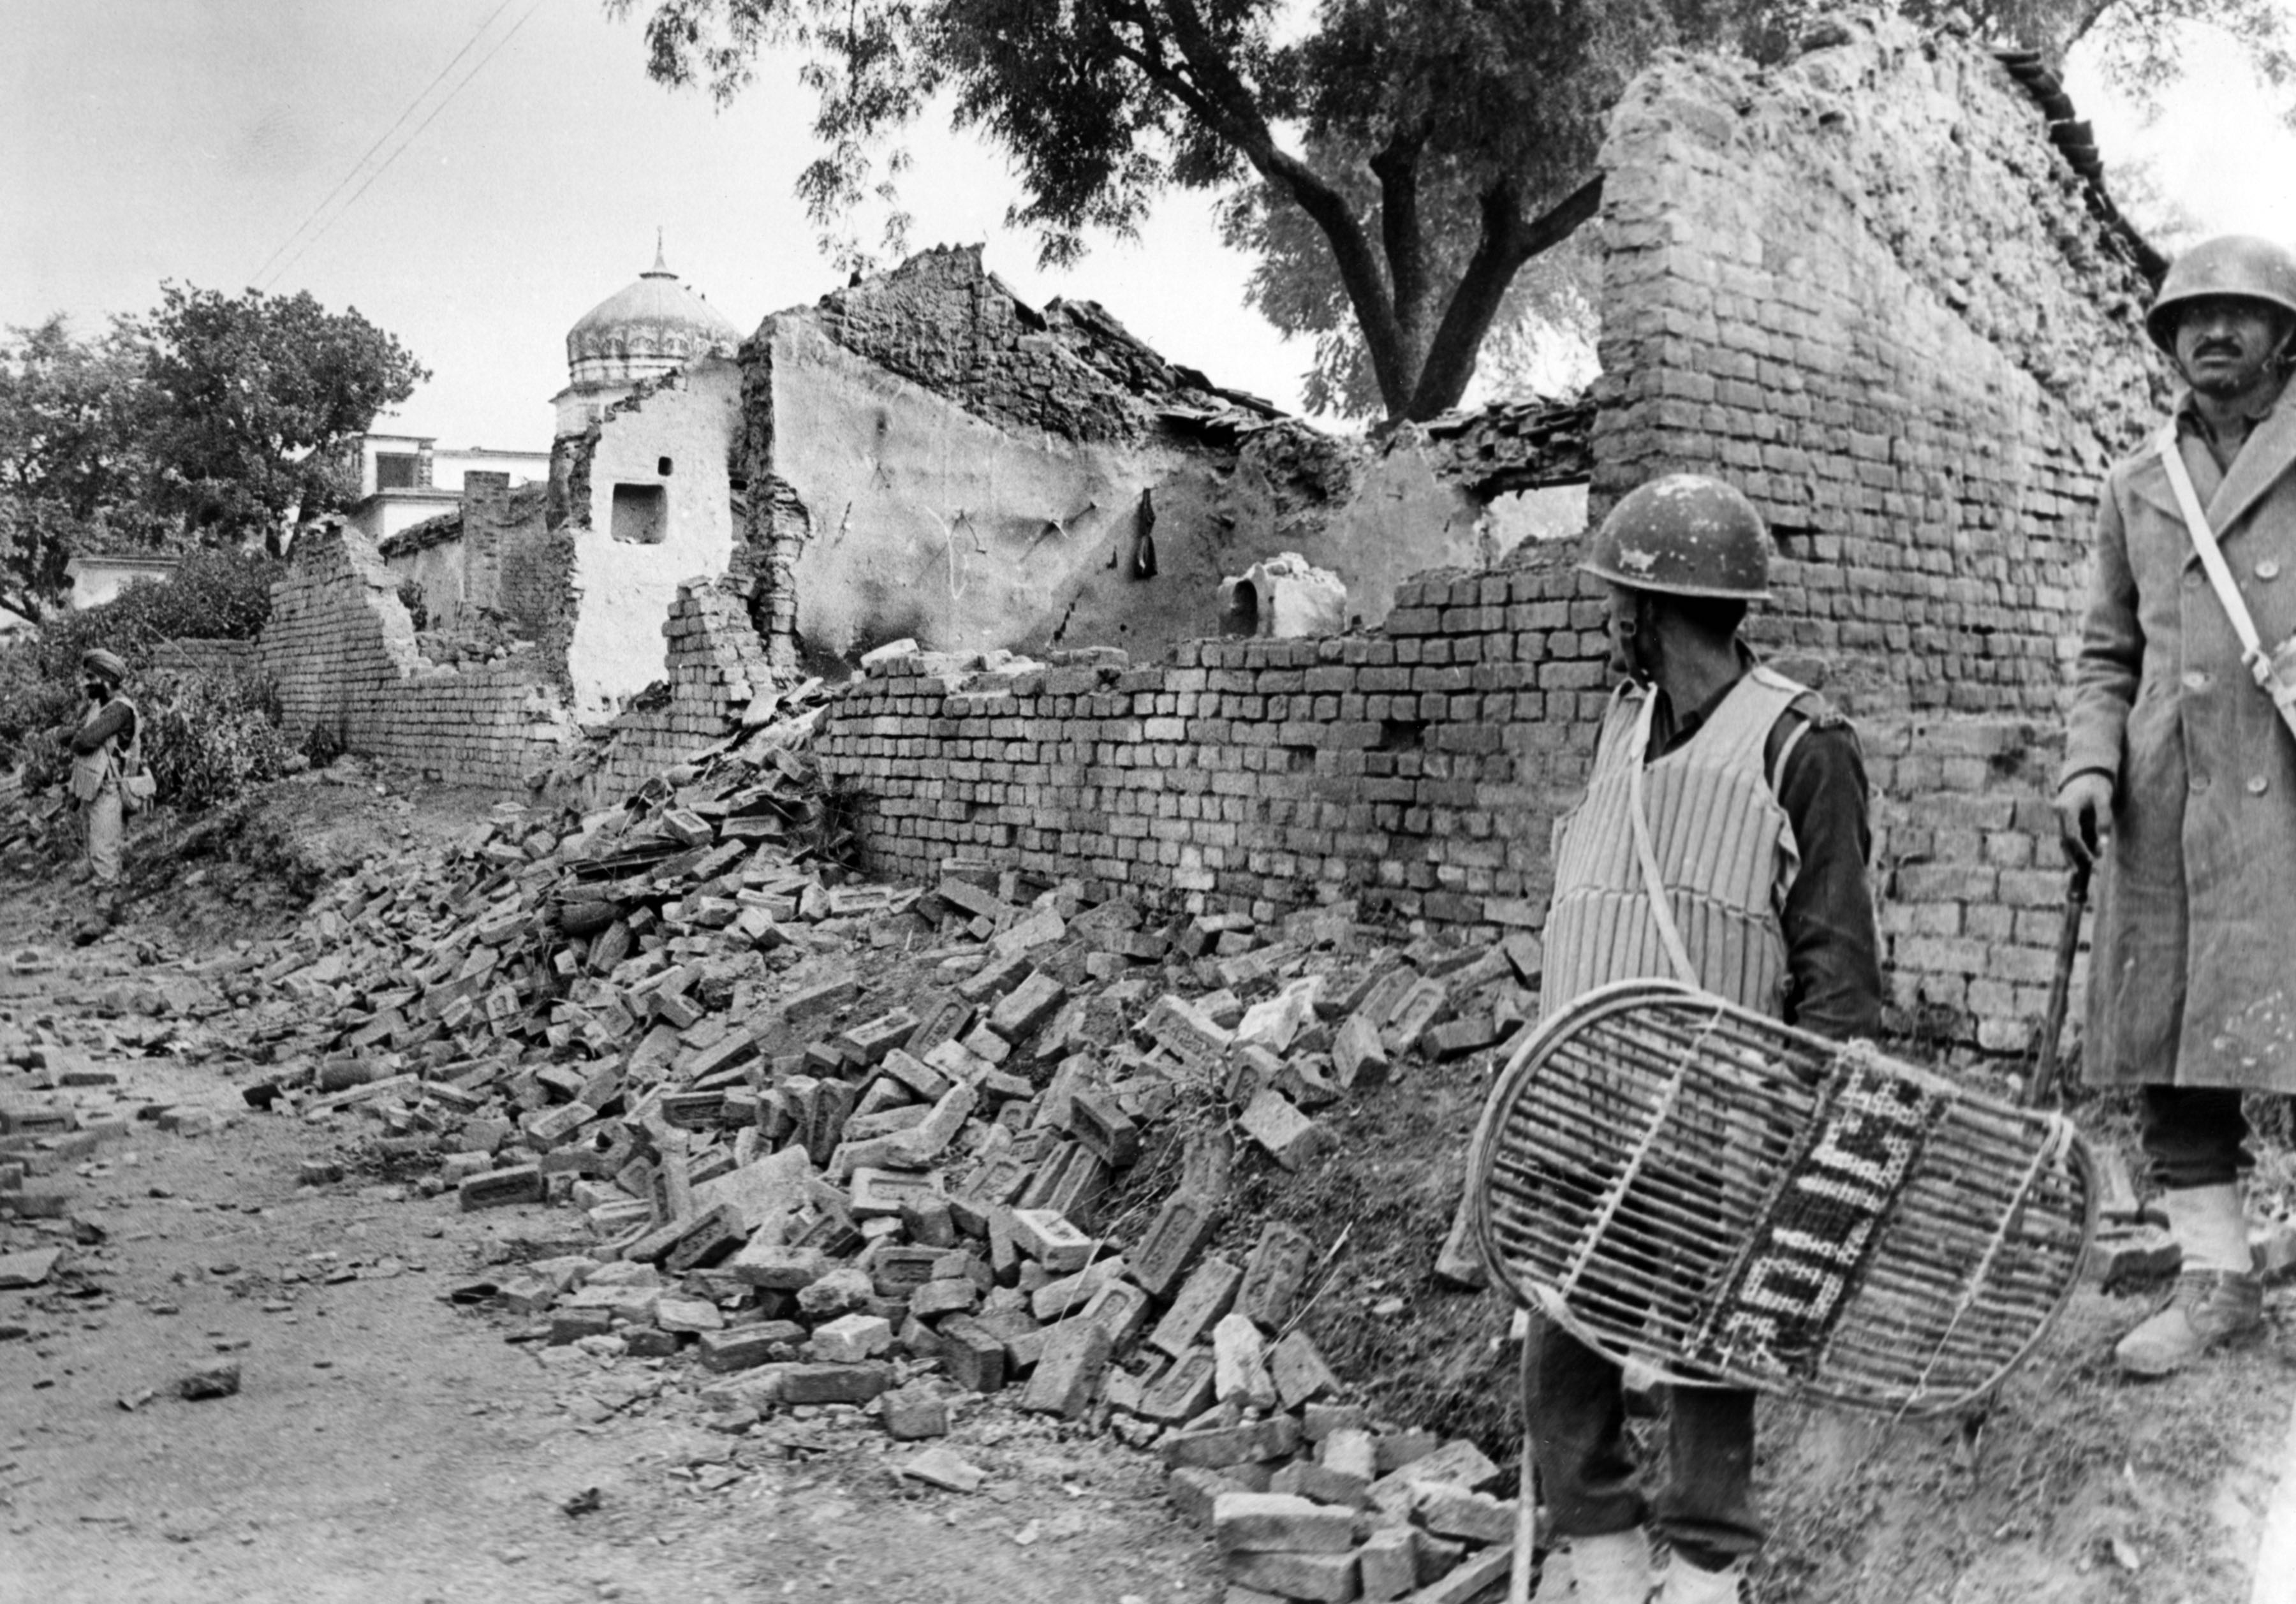 The scene on December 7, 1992: houses of Muslims around the Babri Masjid area vandalised and burnt down. Credit: T. Narayan